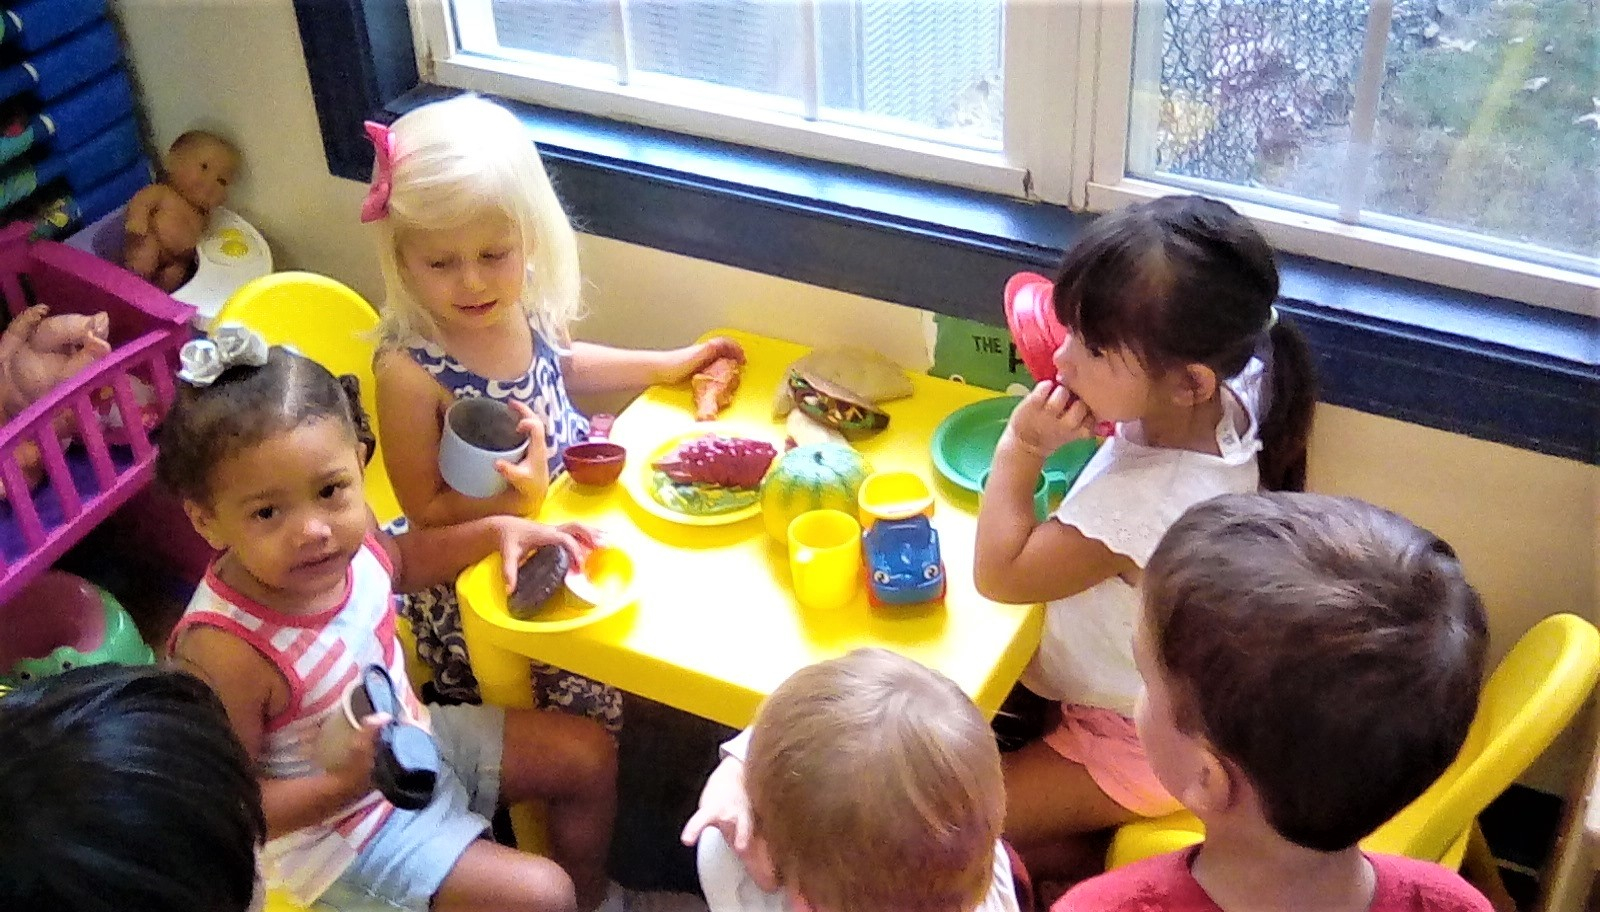 Preschool children playing with plastic educational kitchen food , being part of family at a Preschool & Daycare/Childcare Center serving Apex & Fuquay-Varina, NC